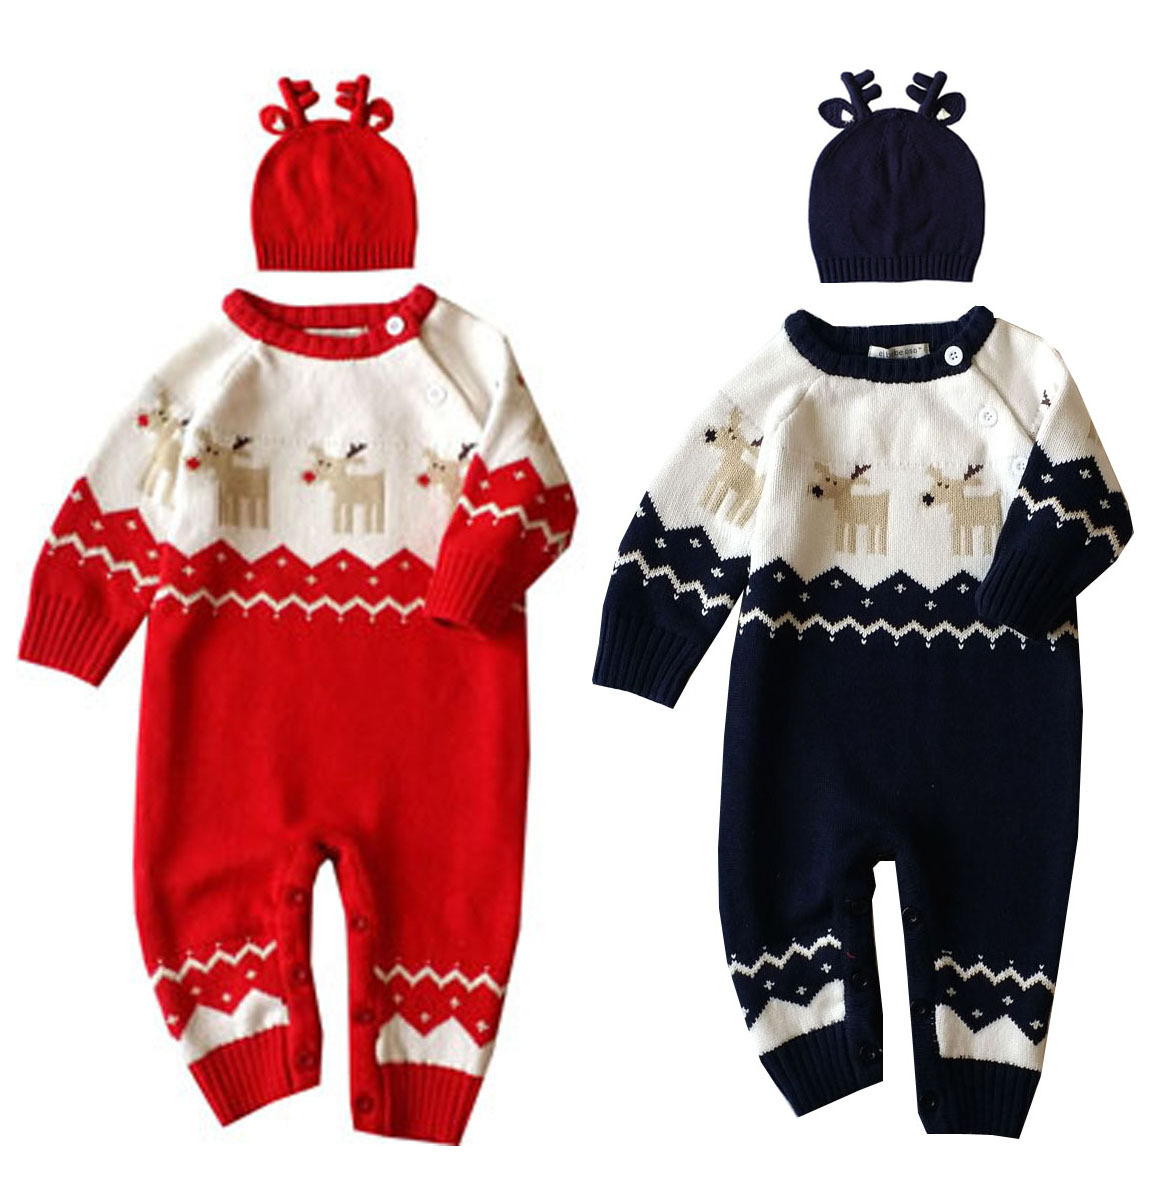 Spring Autumn Baby Romper 100% Cotton christmas Deer Hat + Romper Outfit 2pcs Set Baby Christmas Costumes Newborn Baby Clothes baby romper girl rompers christmas baby clothes newborn christmas baby gift new born cotton baby christmas clothes 1pcs lot a mc